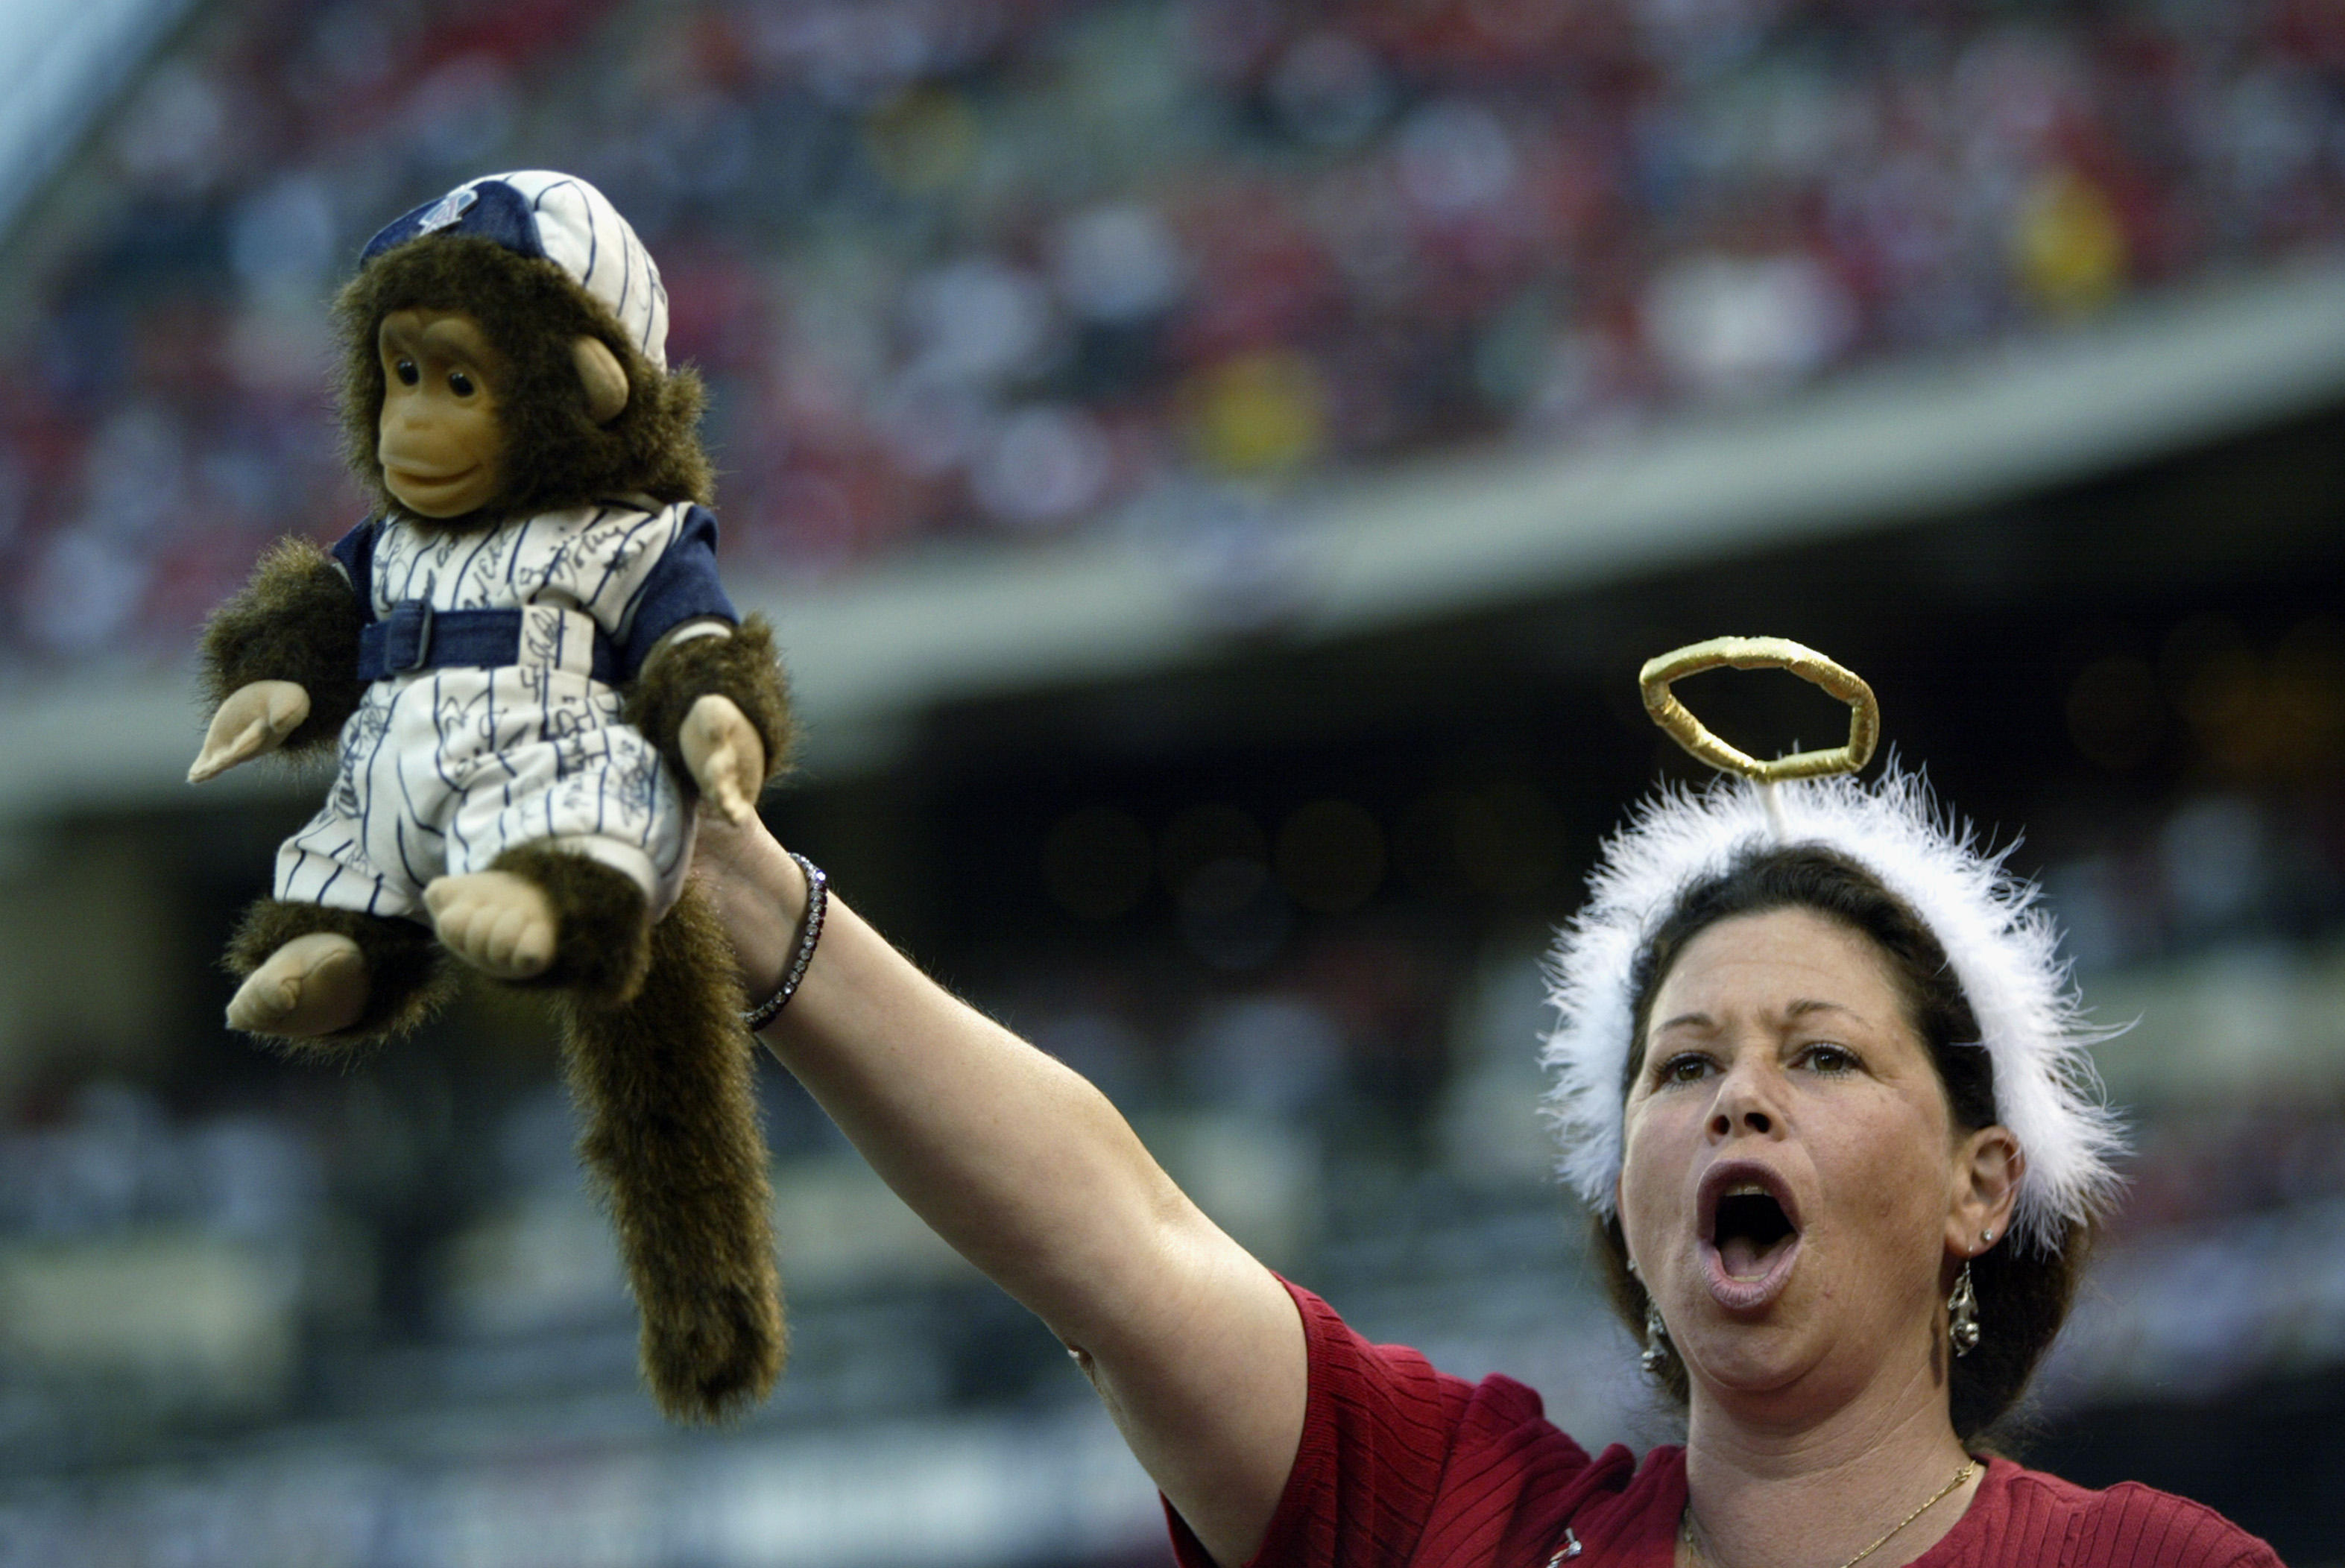 ANAHEIM, CA - OCTOBER 11:  A fan of the Anaheim Angels holds up a autographed 'rally monkey' stuffed animal during Game three of the American League Championship Series against the Minnesota Twins at Edison International Field on October 11, 2002 in Anahe